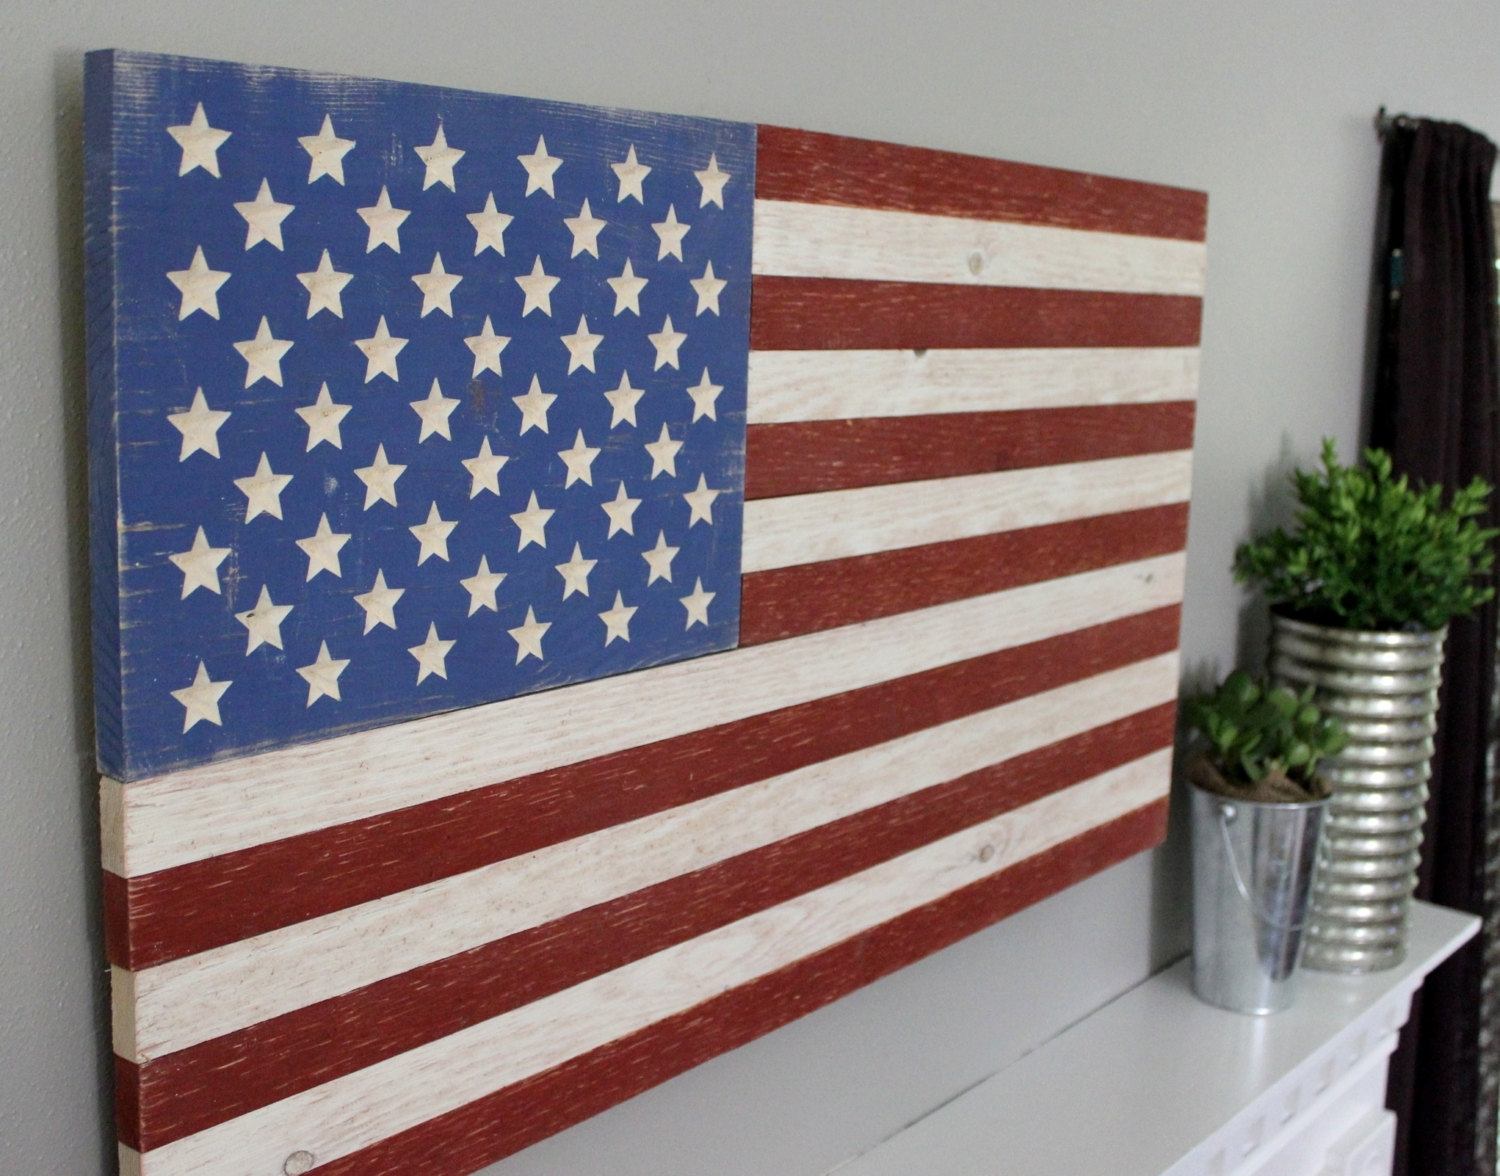 Rustic Wooden American Flag Superb American Flag Wall Art – Prix Throughout Latest Wooden American Flag Wall Art (View 9 of 20)